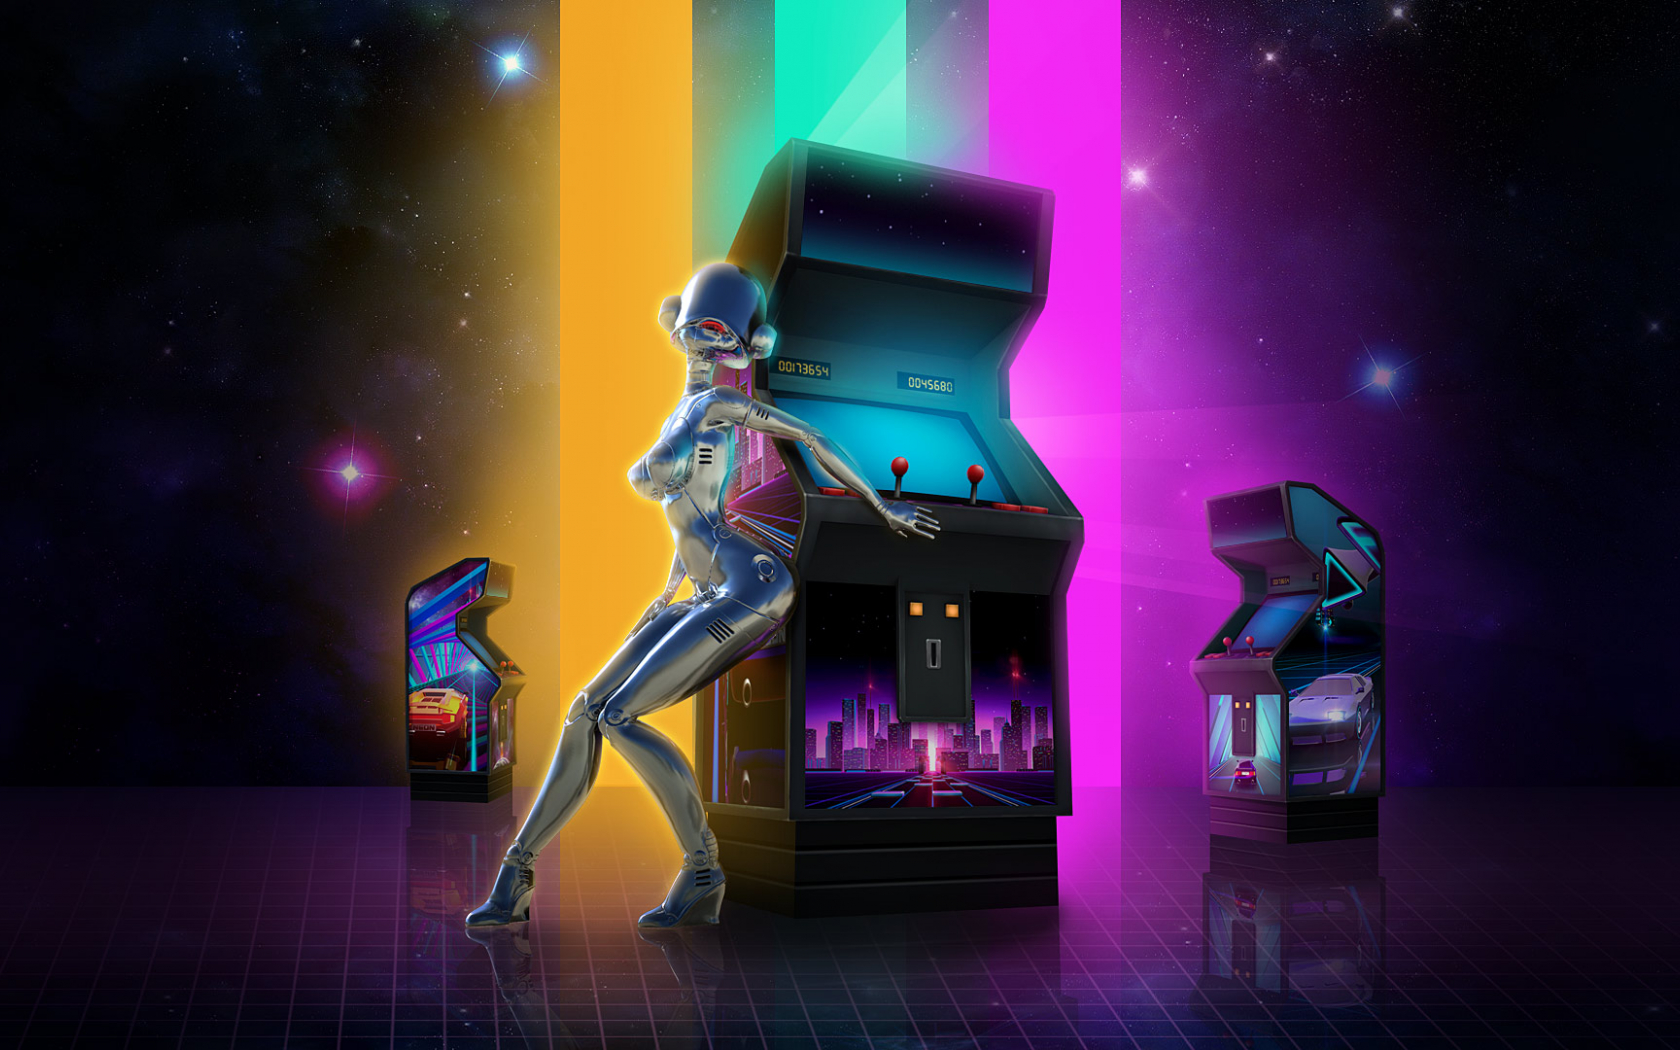 Free Download Steam Card Exchange Showcase Neon Drive 1920x1080 For Your Desktop Mobile Tablet Explore 17 Hayseed Fortnite Wallpapers Hayseed Fortnite Wallpapers Fortnite Wallpapers Fortnite Wallpaper